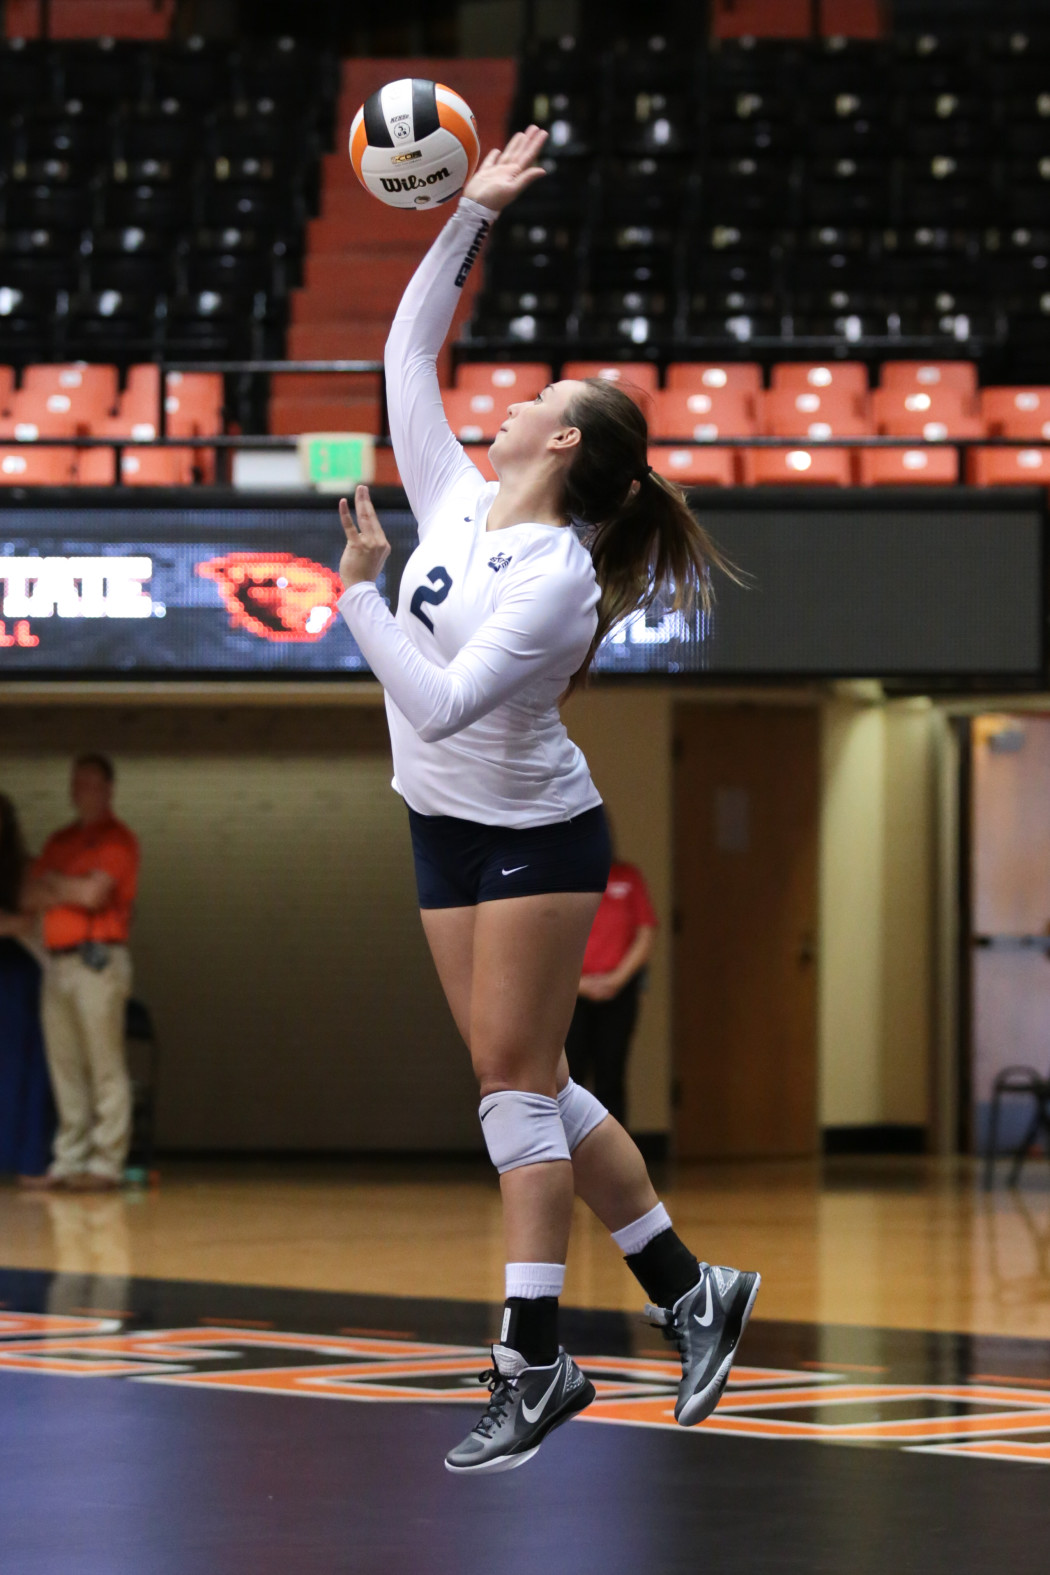 USU volleyball concludes an eventful road trip - The Utah